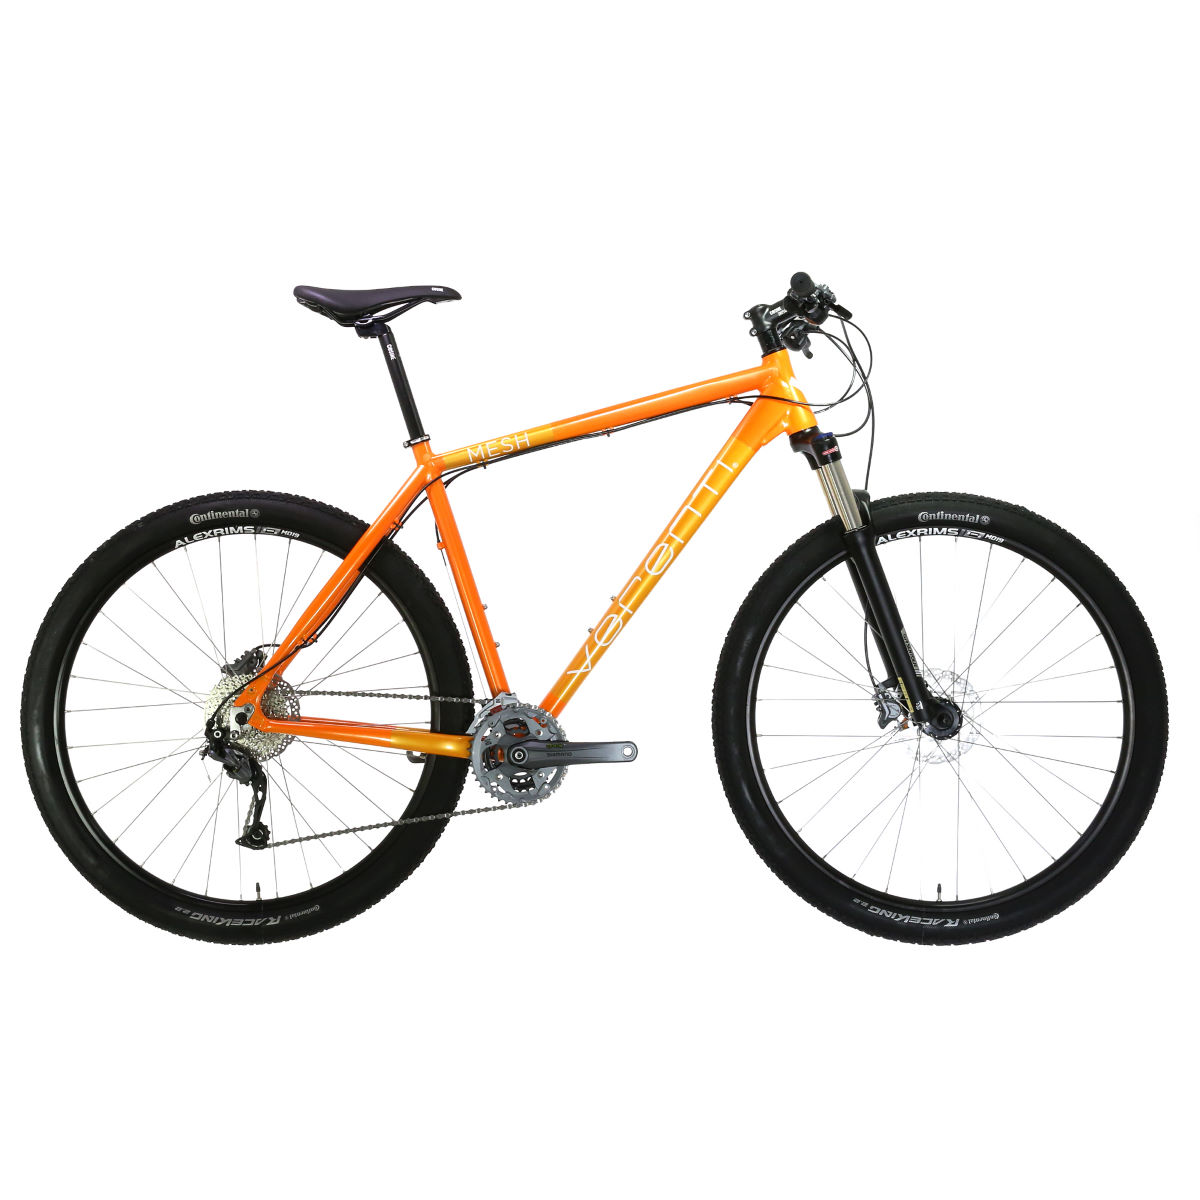 VTT Verenti Mesh Alivio (2016) - 14'' Orange VTT semi-rigides